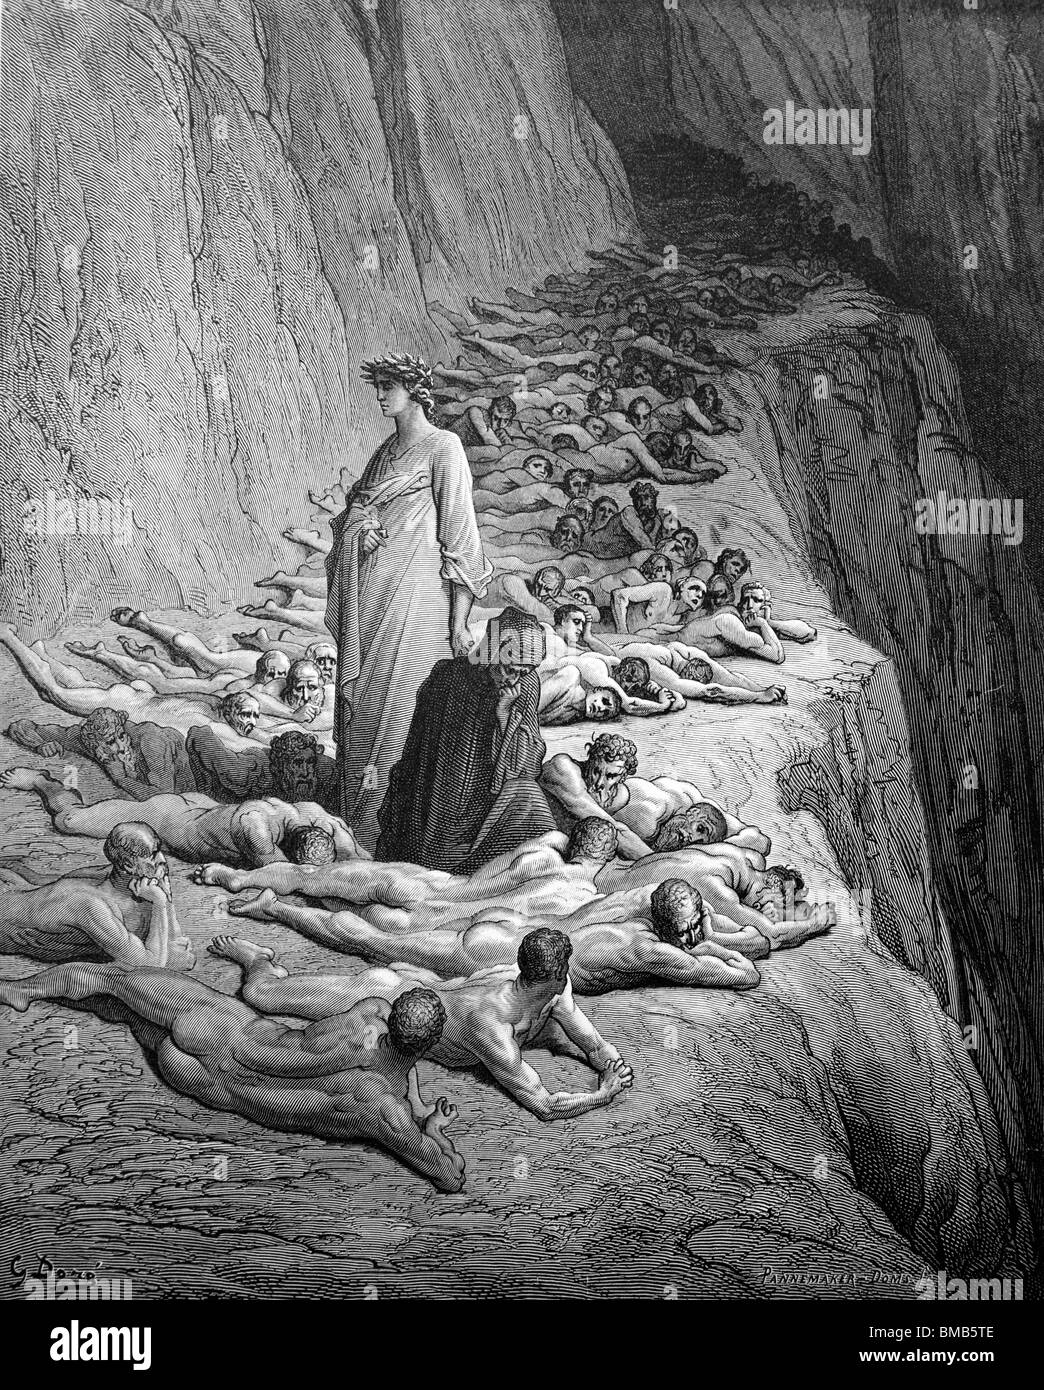 the purgatory from the divine comedy by dante alighieri The divine comedy (italian: commedia, later christened divina by giovanni boccaccio), written by dante alighieri between 1308 and his death in 1321, is widely.